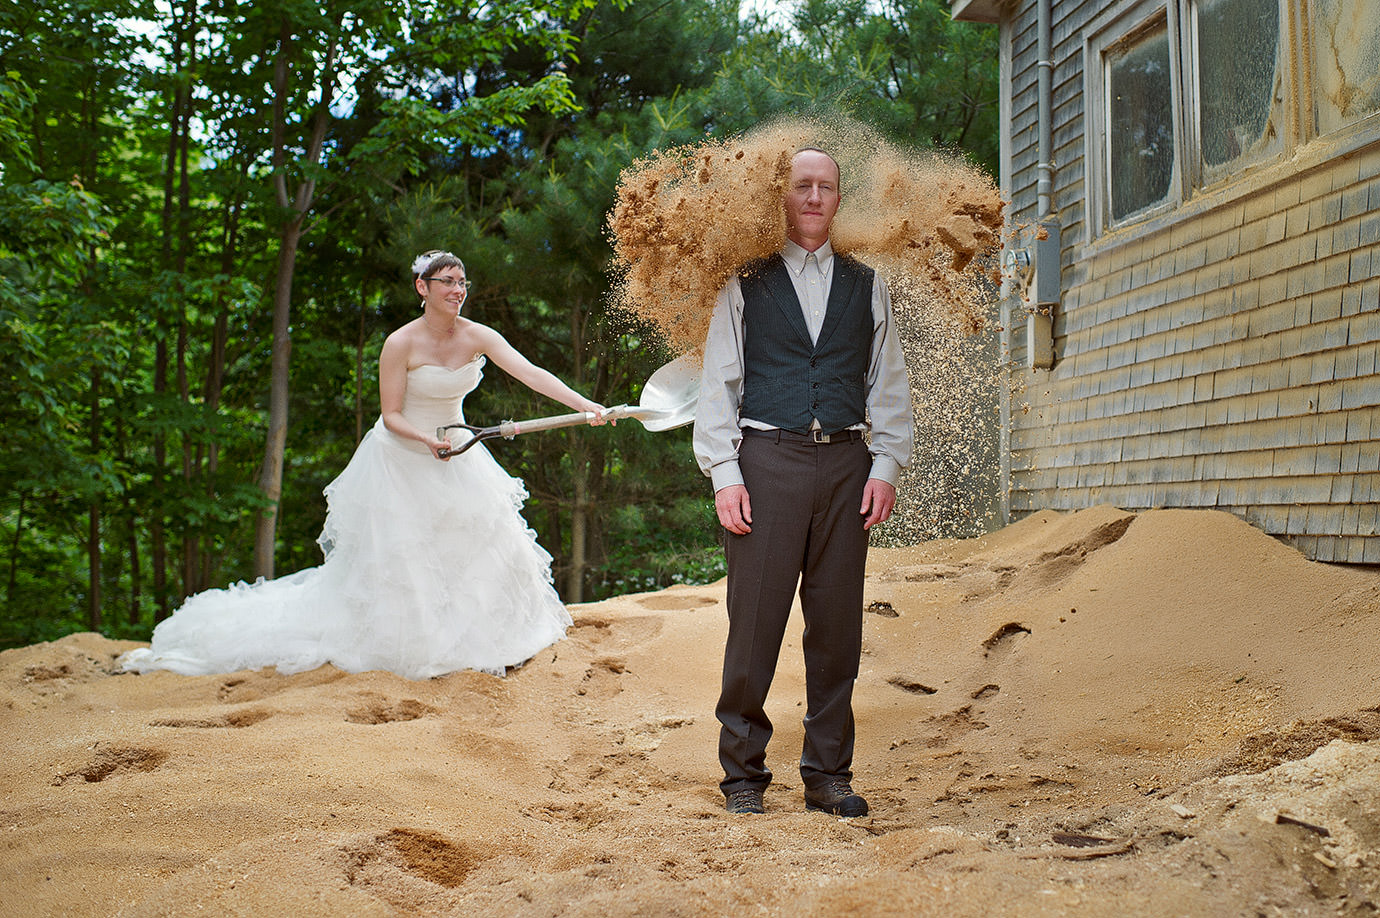 Halifax-Wedding-Photographers-Windhorse-Farm-J+T-1A